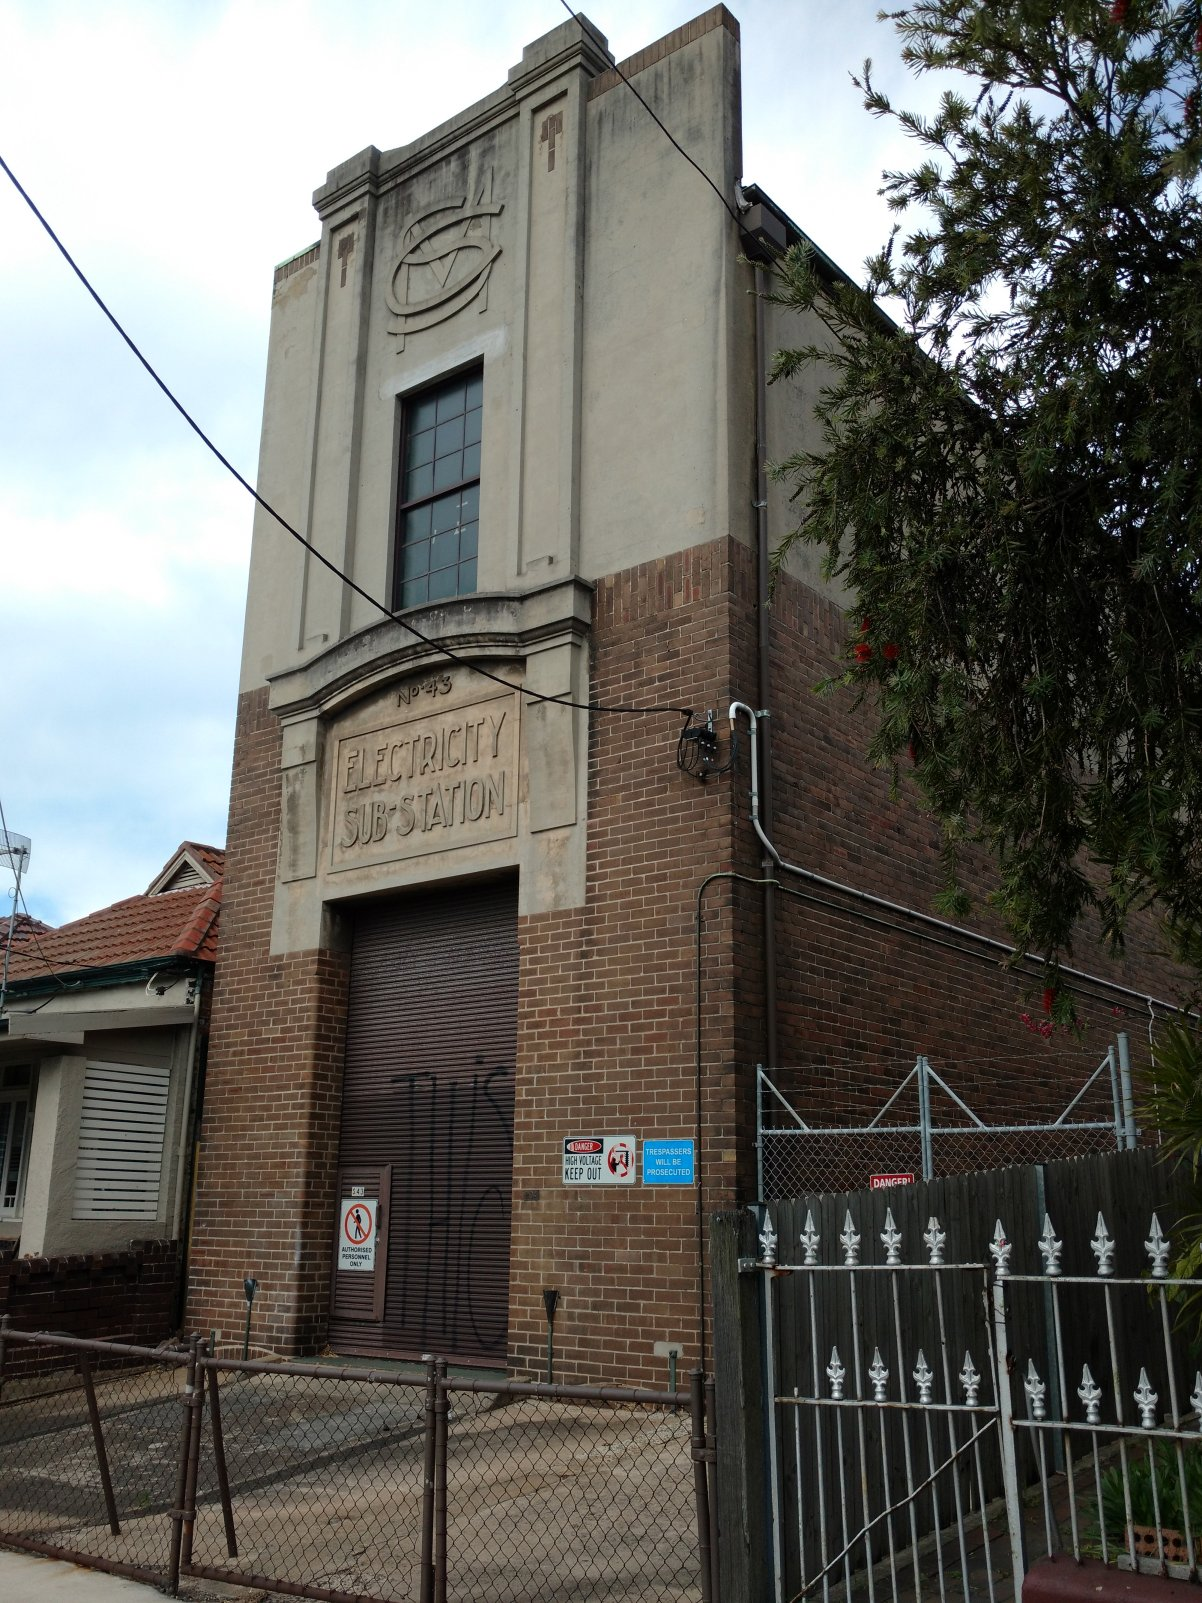 Electricity Substation 43